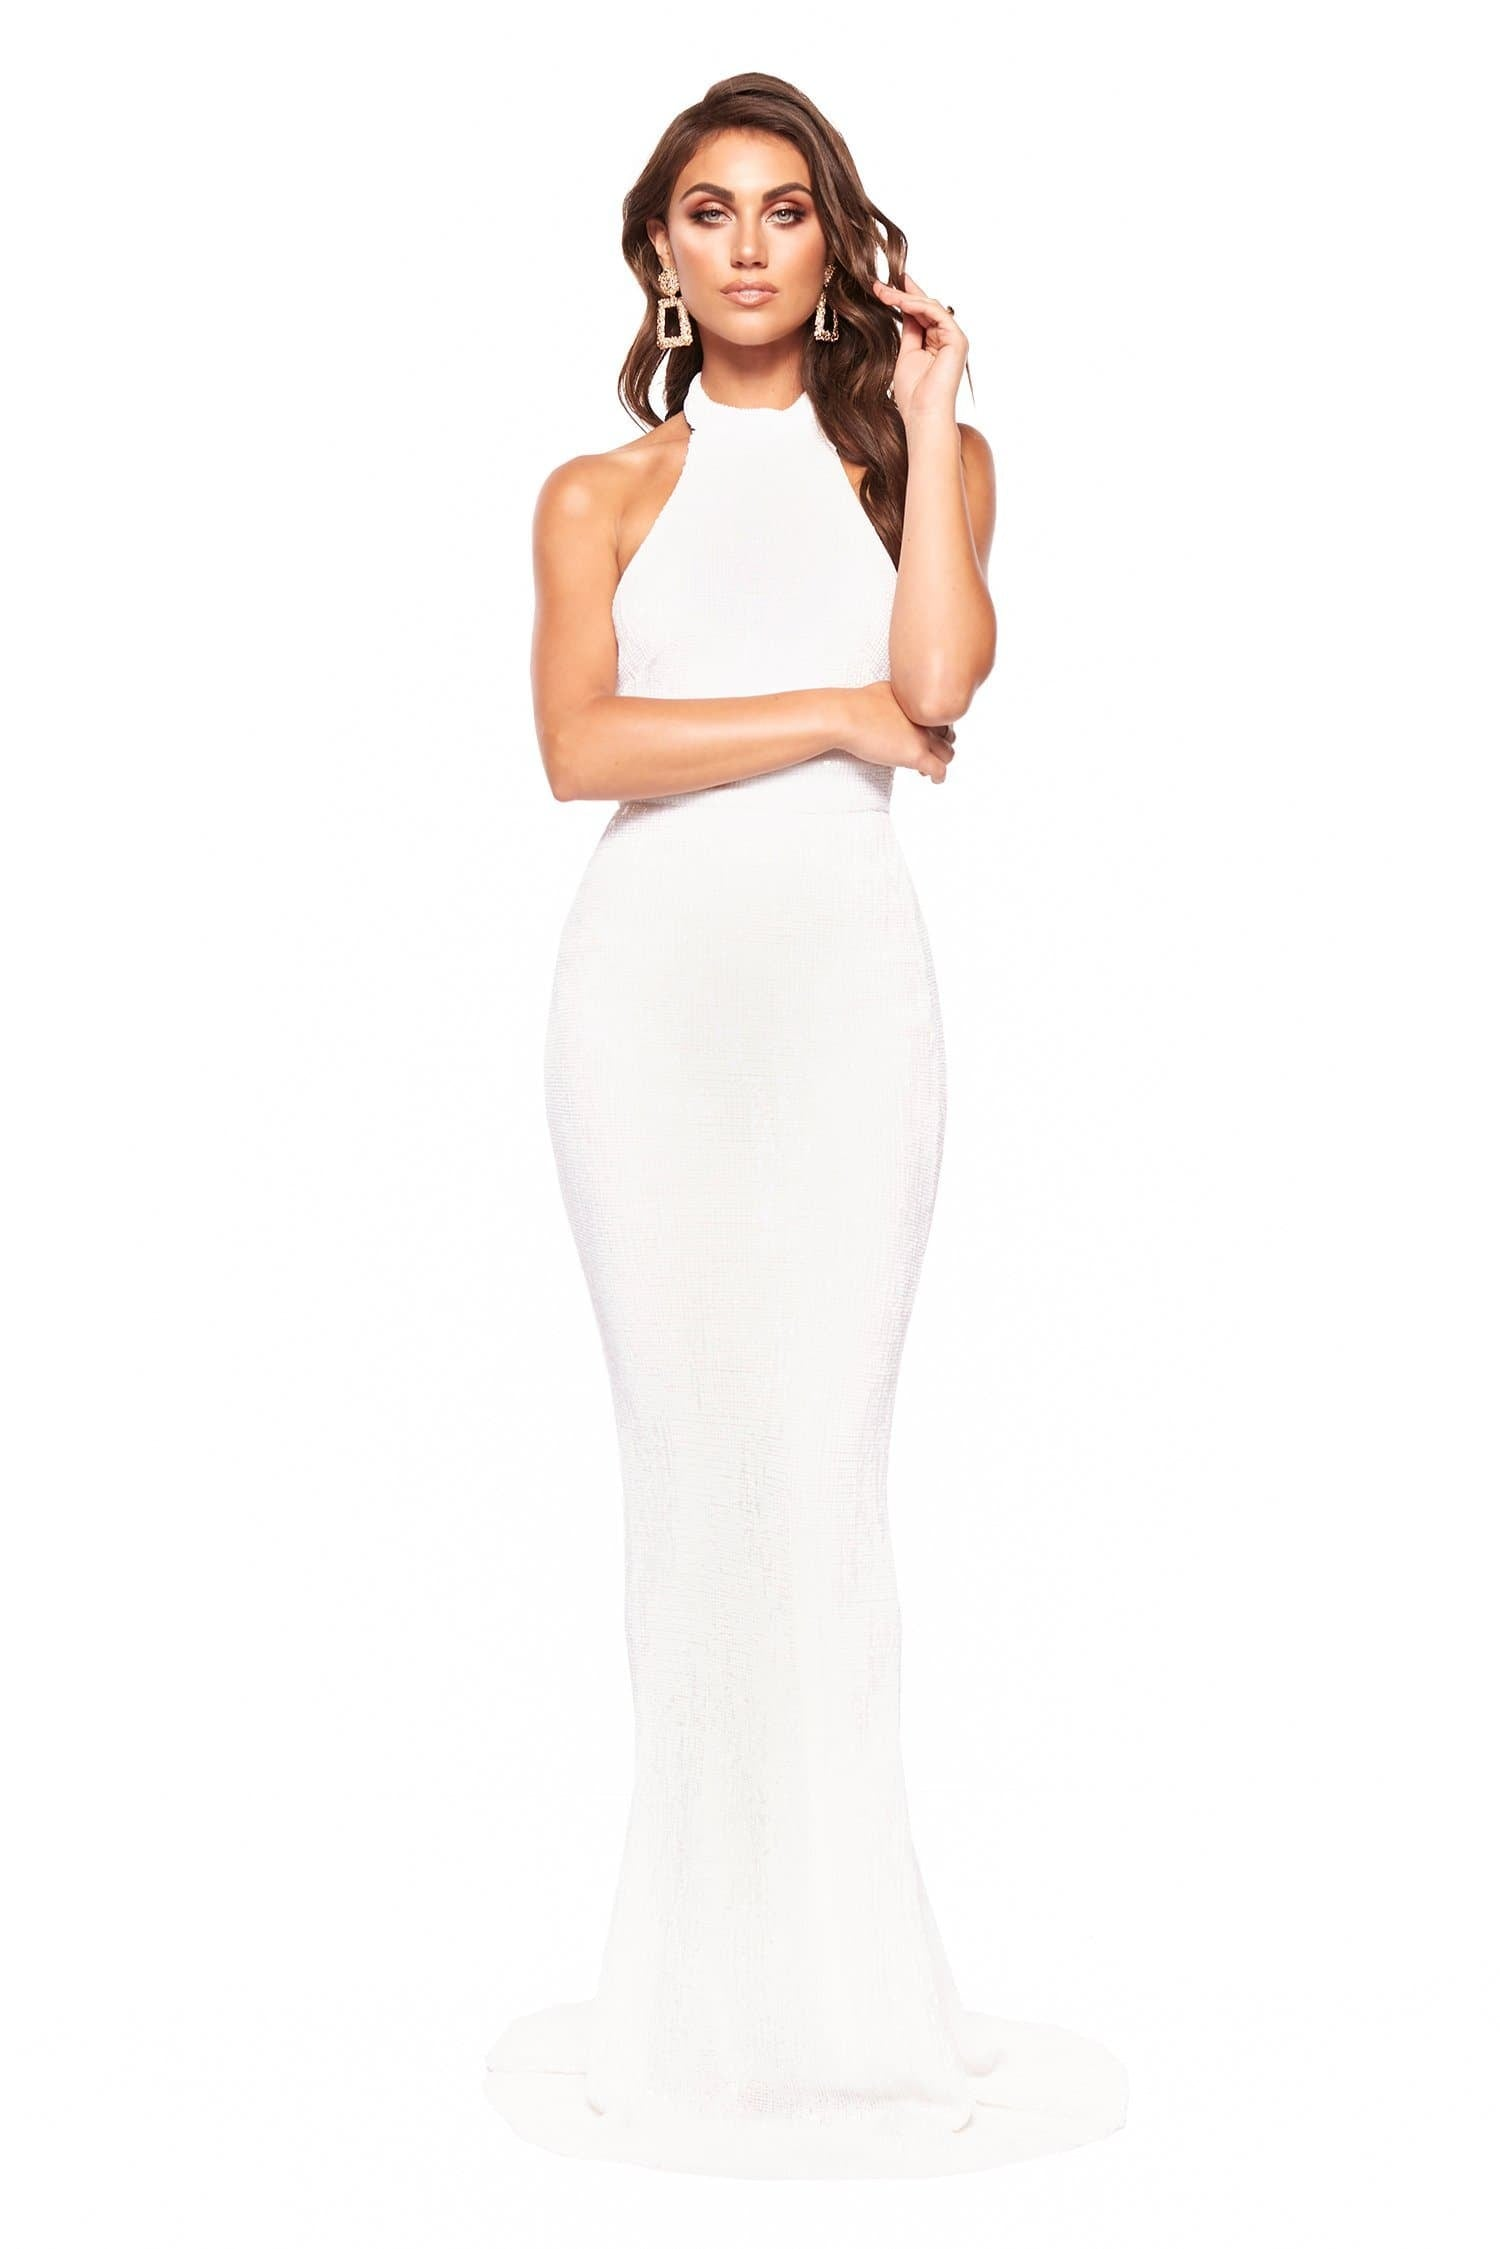 2c830da1328 A N Valentina - White Sequin Halter Neck Gown with Mermaid Tail ...